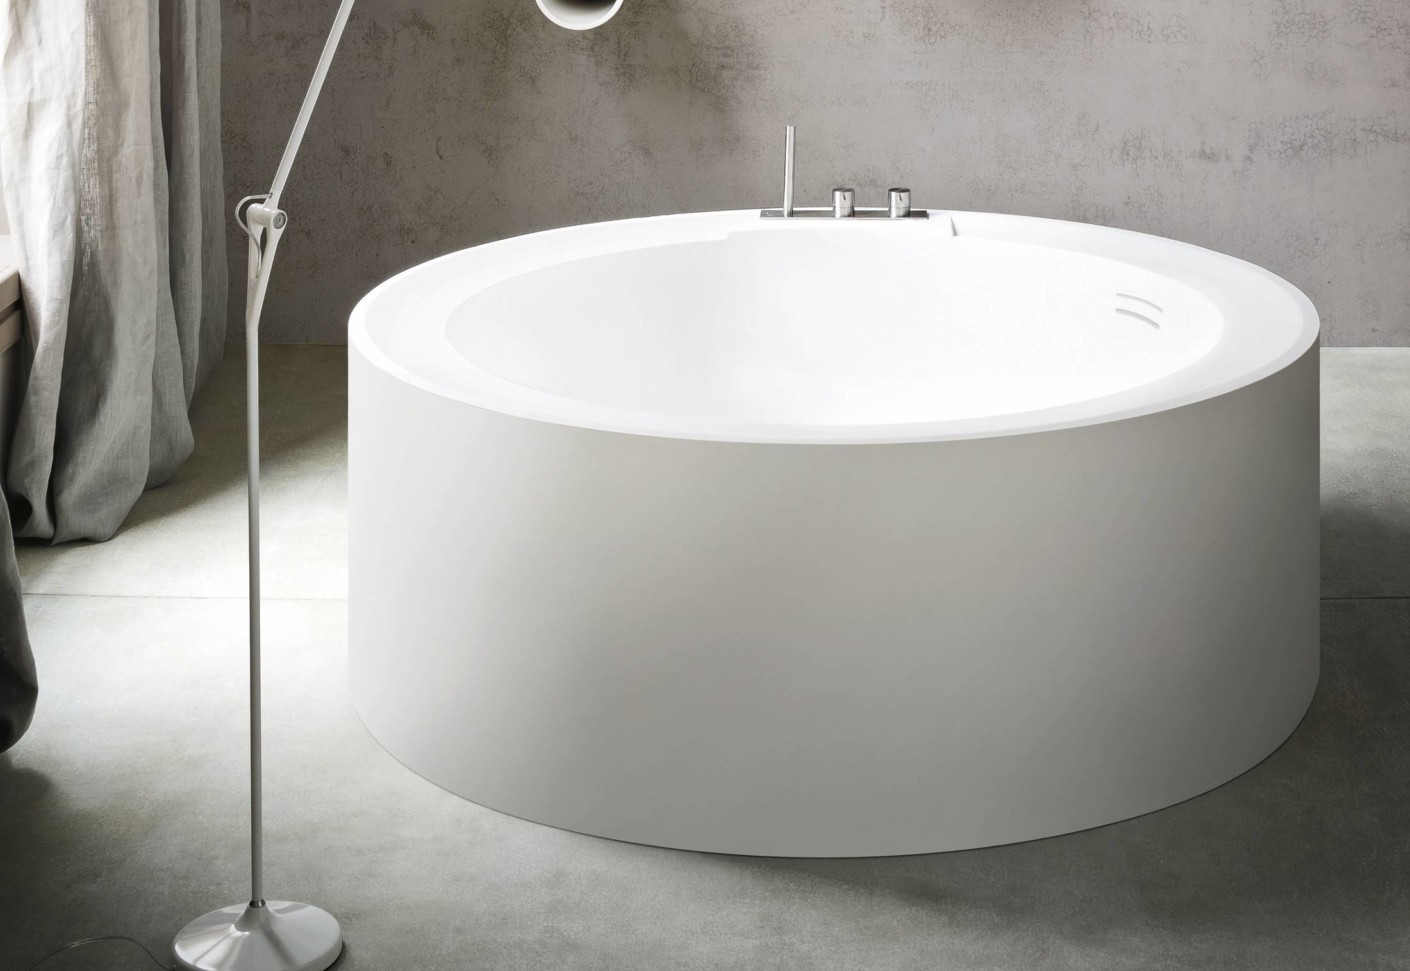 Hole bathtub round by Rexa Design